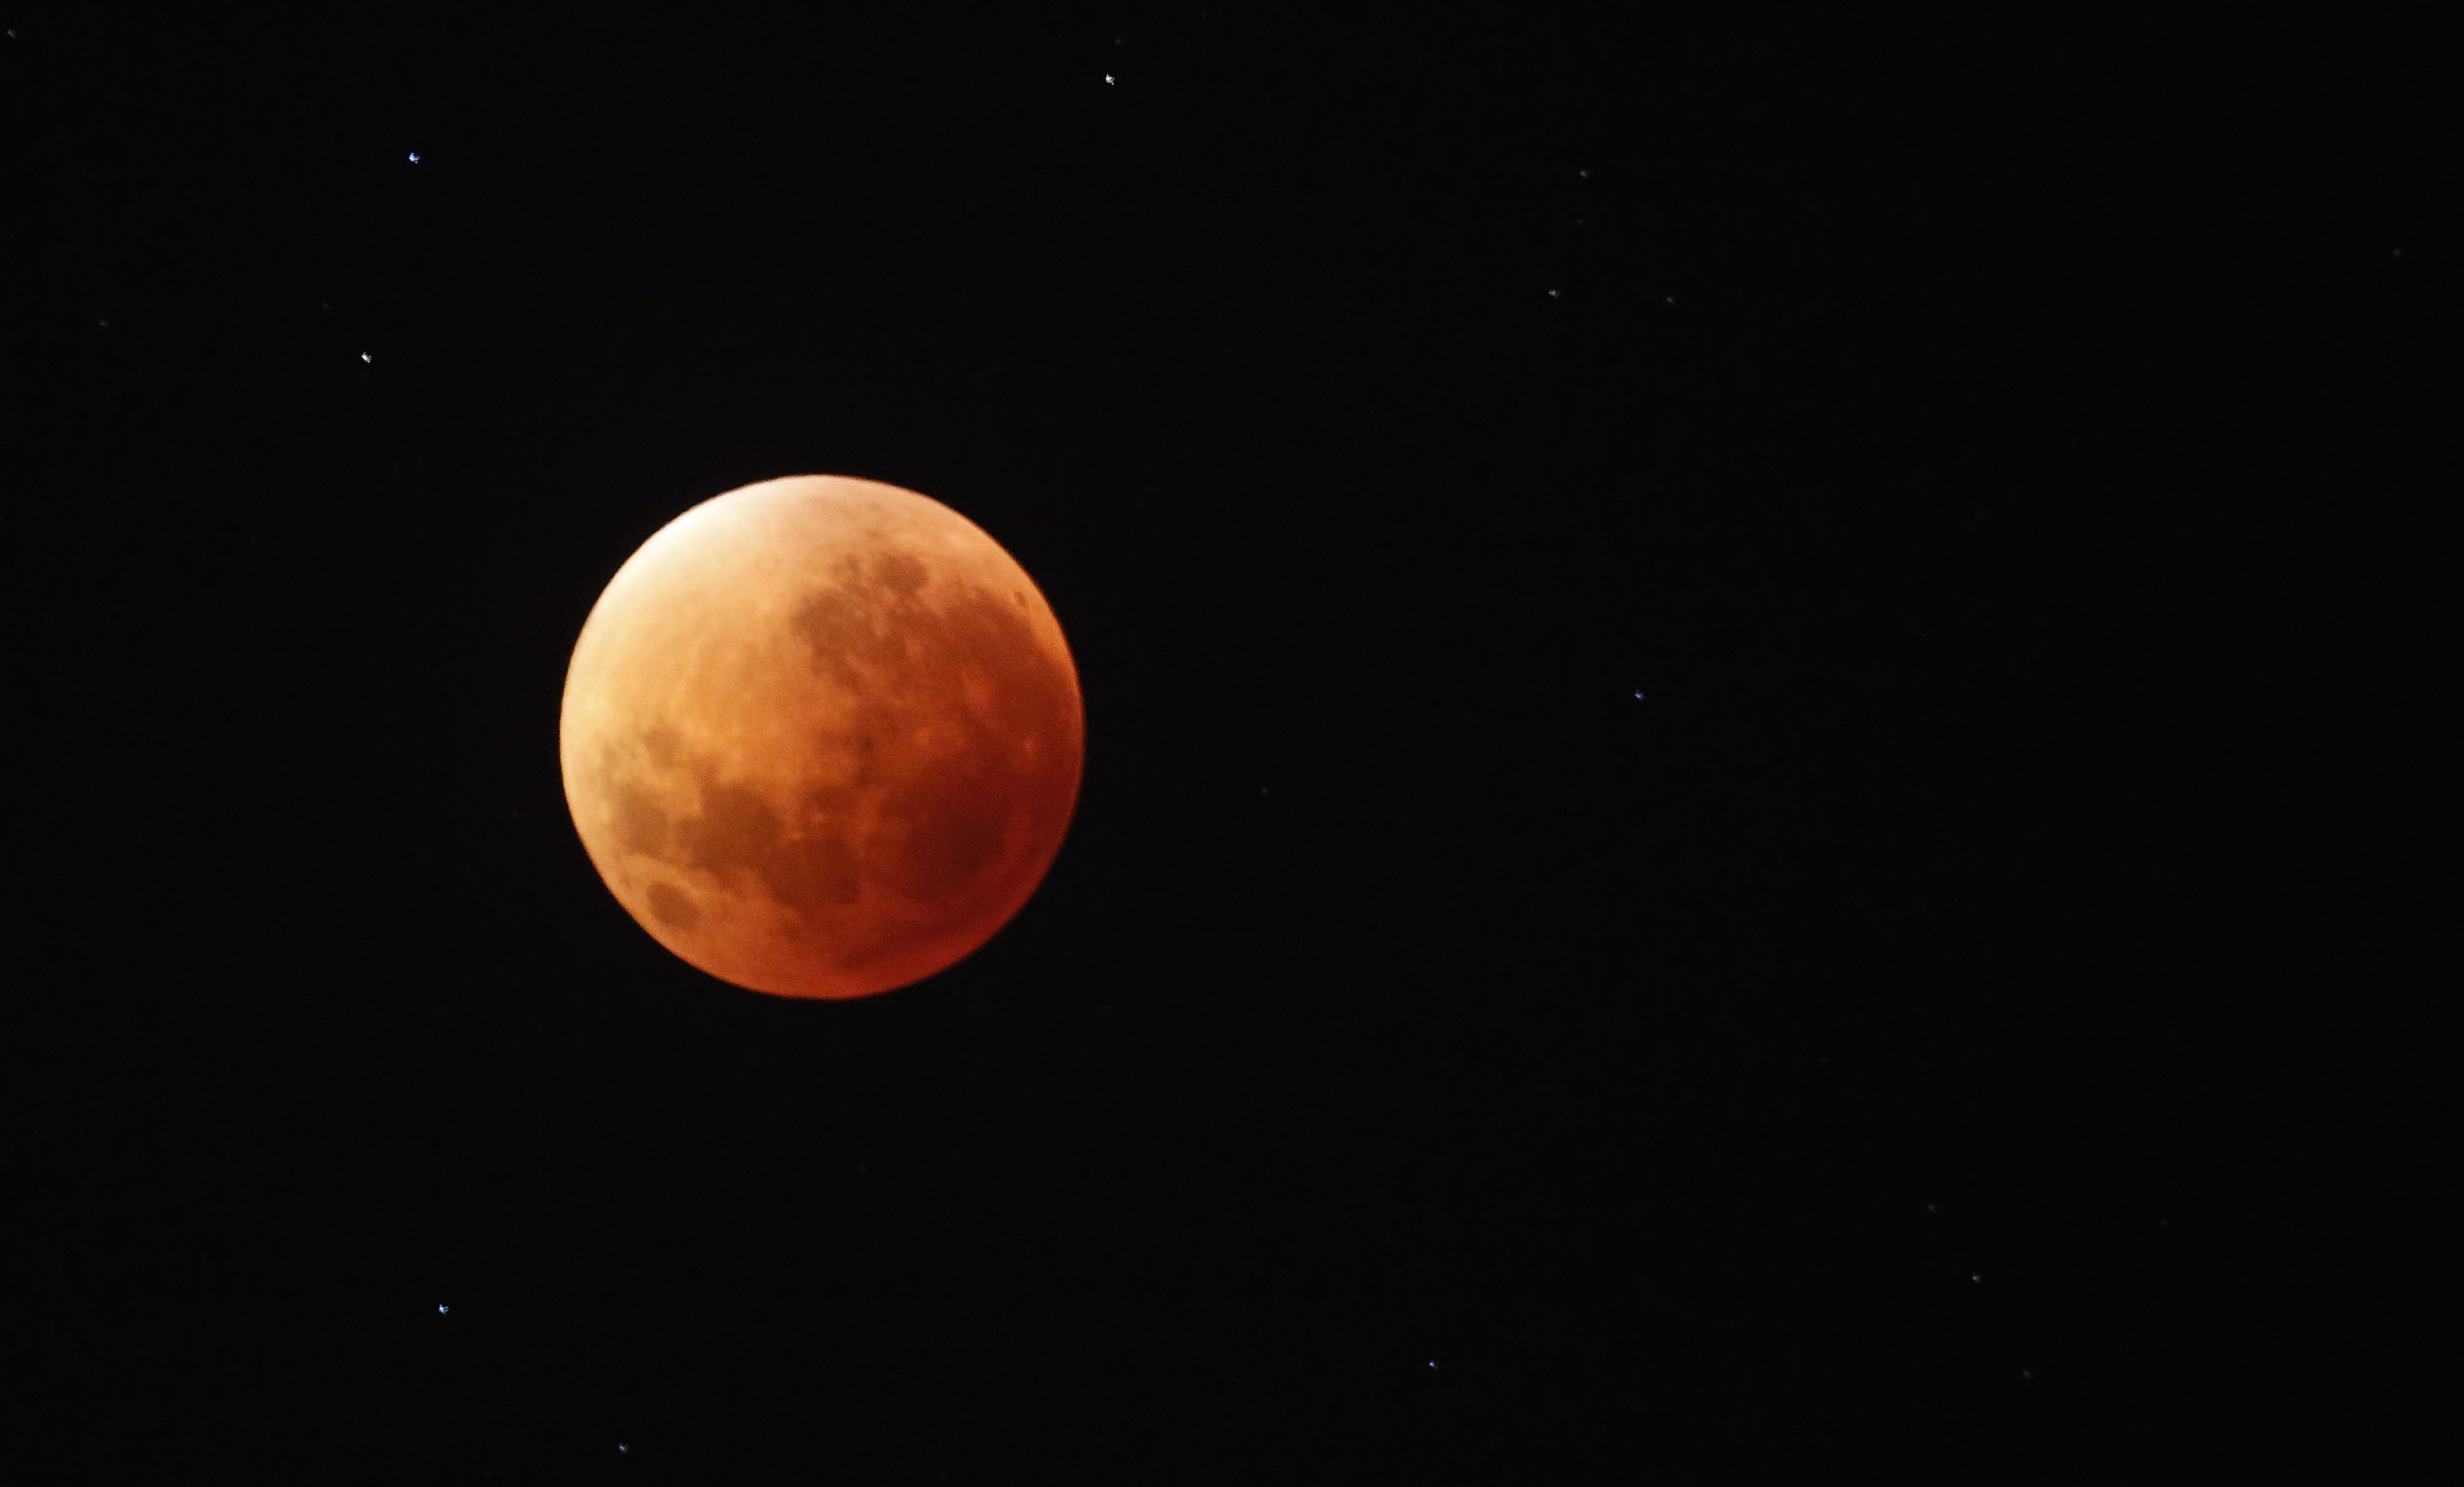 A so-called supermoon is seen during a lunar eclipse in Cape Town, South Africa,  in the early hours of Sept. 28, 2015